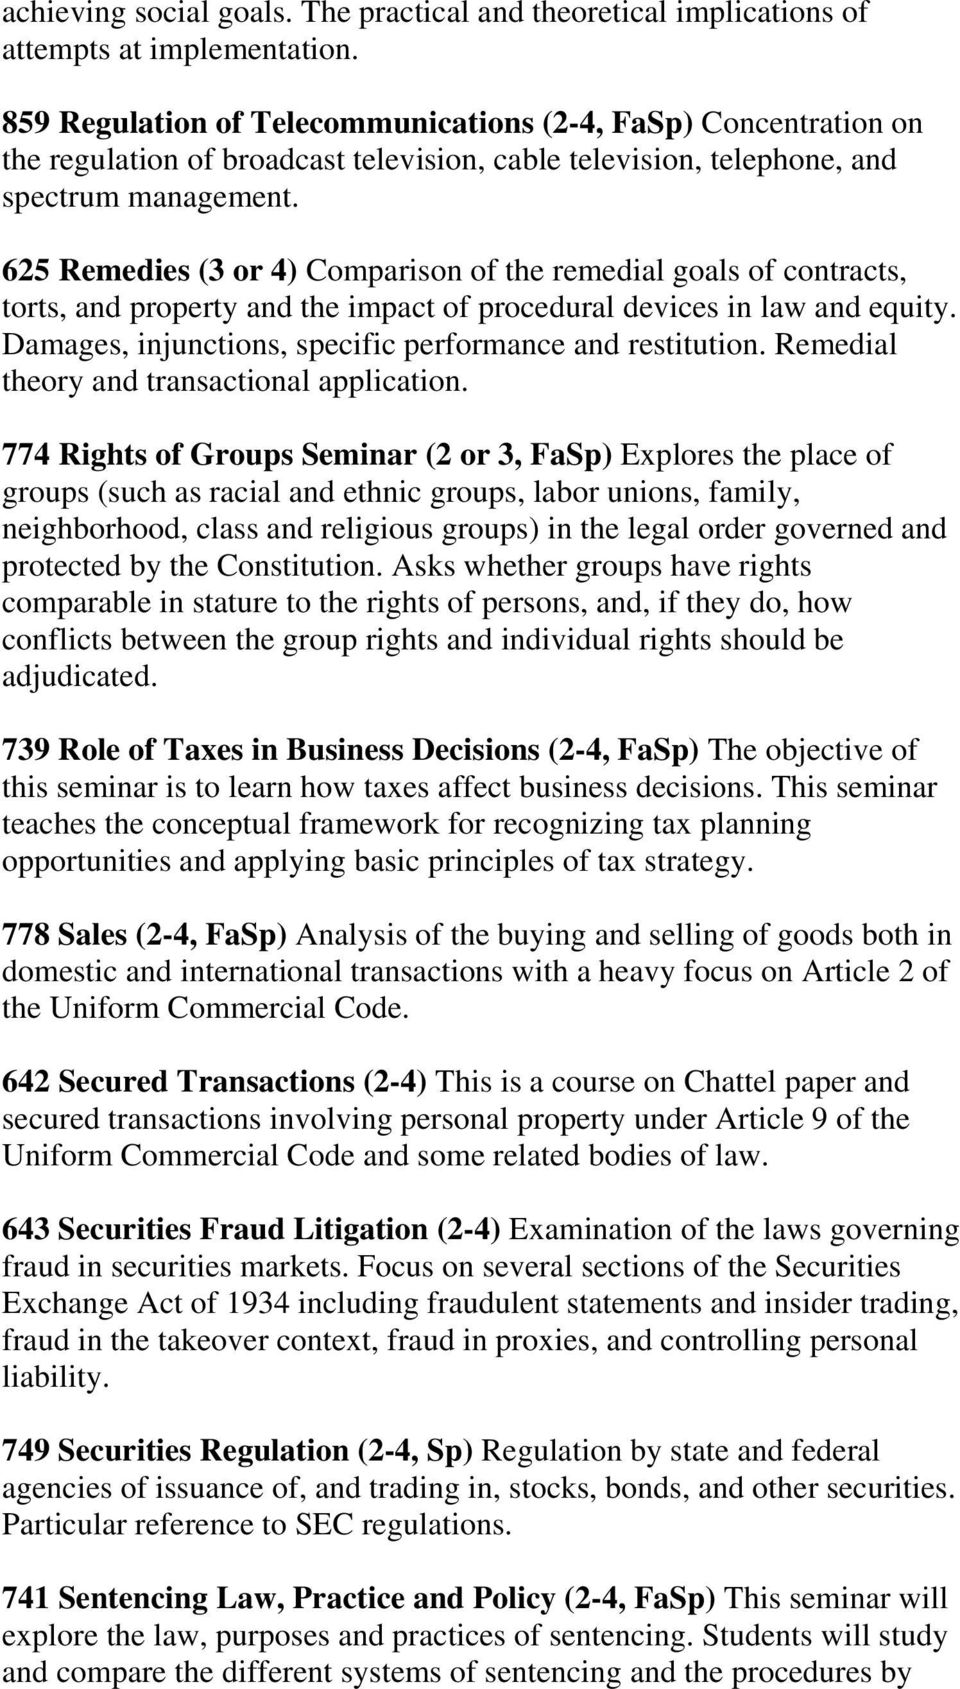 625 Remedies (3 or 4) Comparison of the remedial goals of contracts, torts, and property and the impact of procedural devices in law and equity.